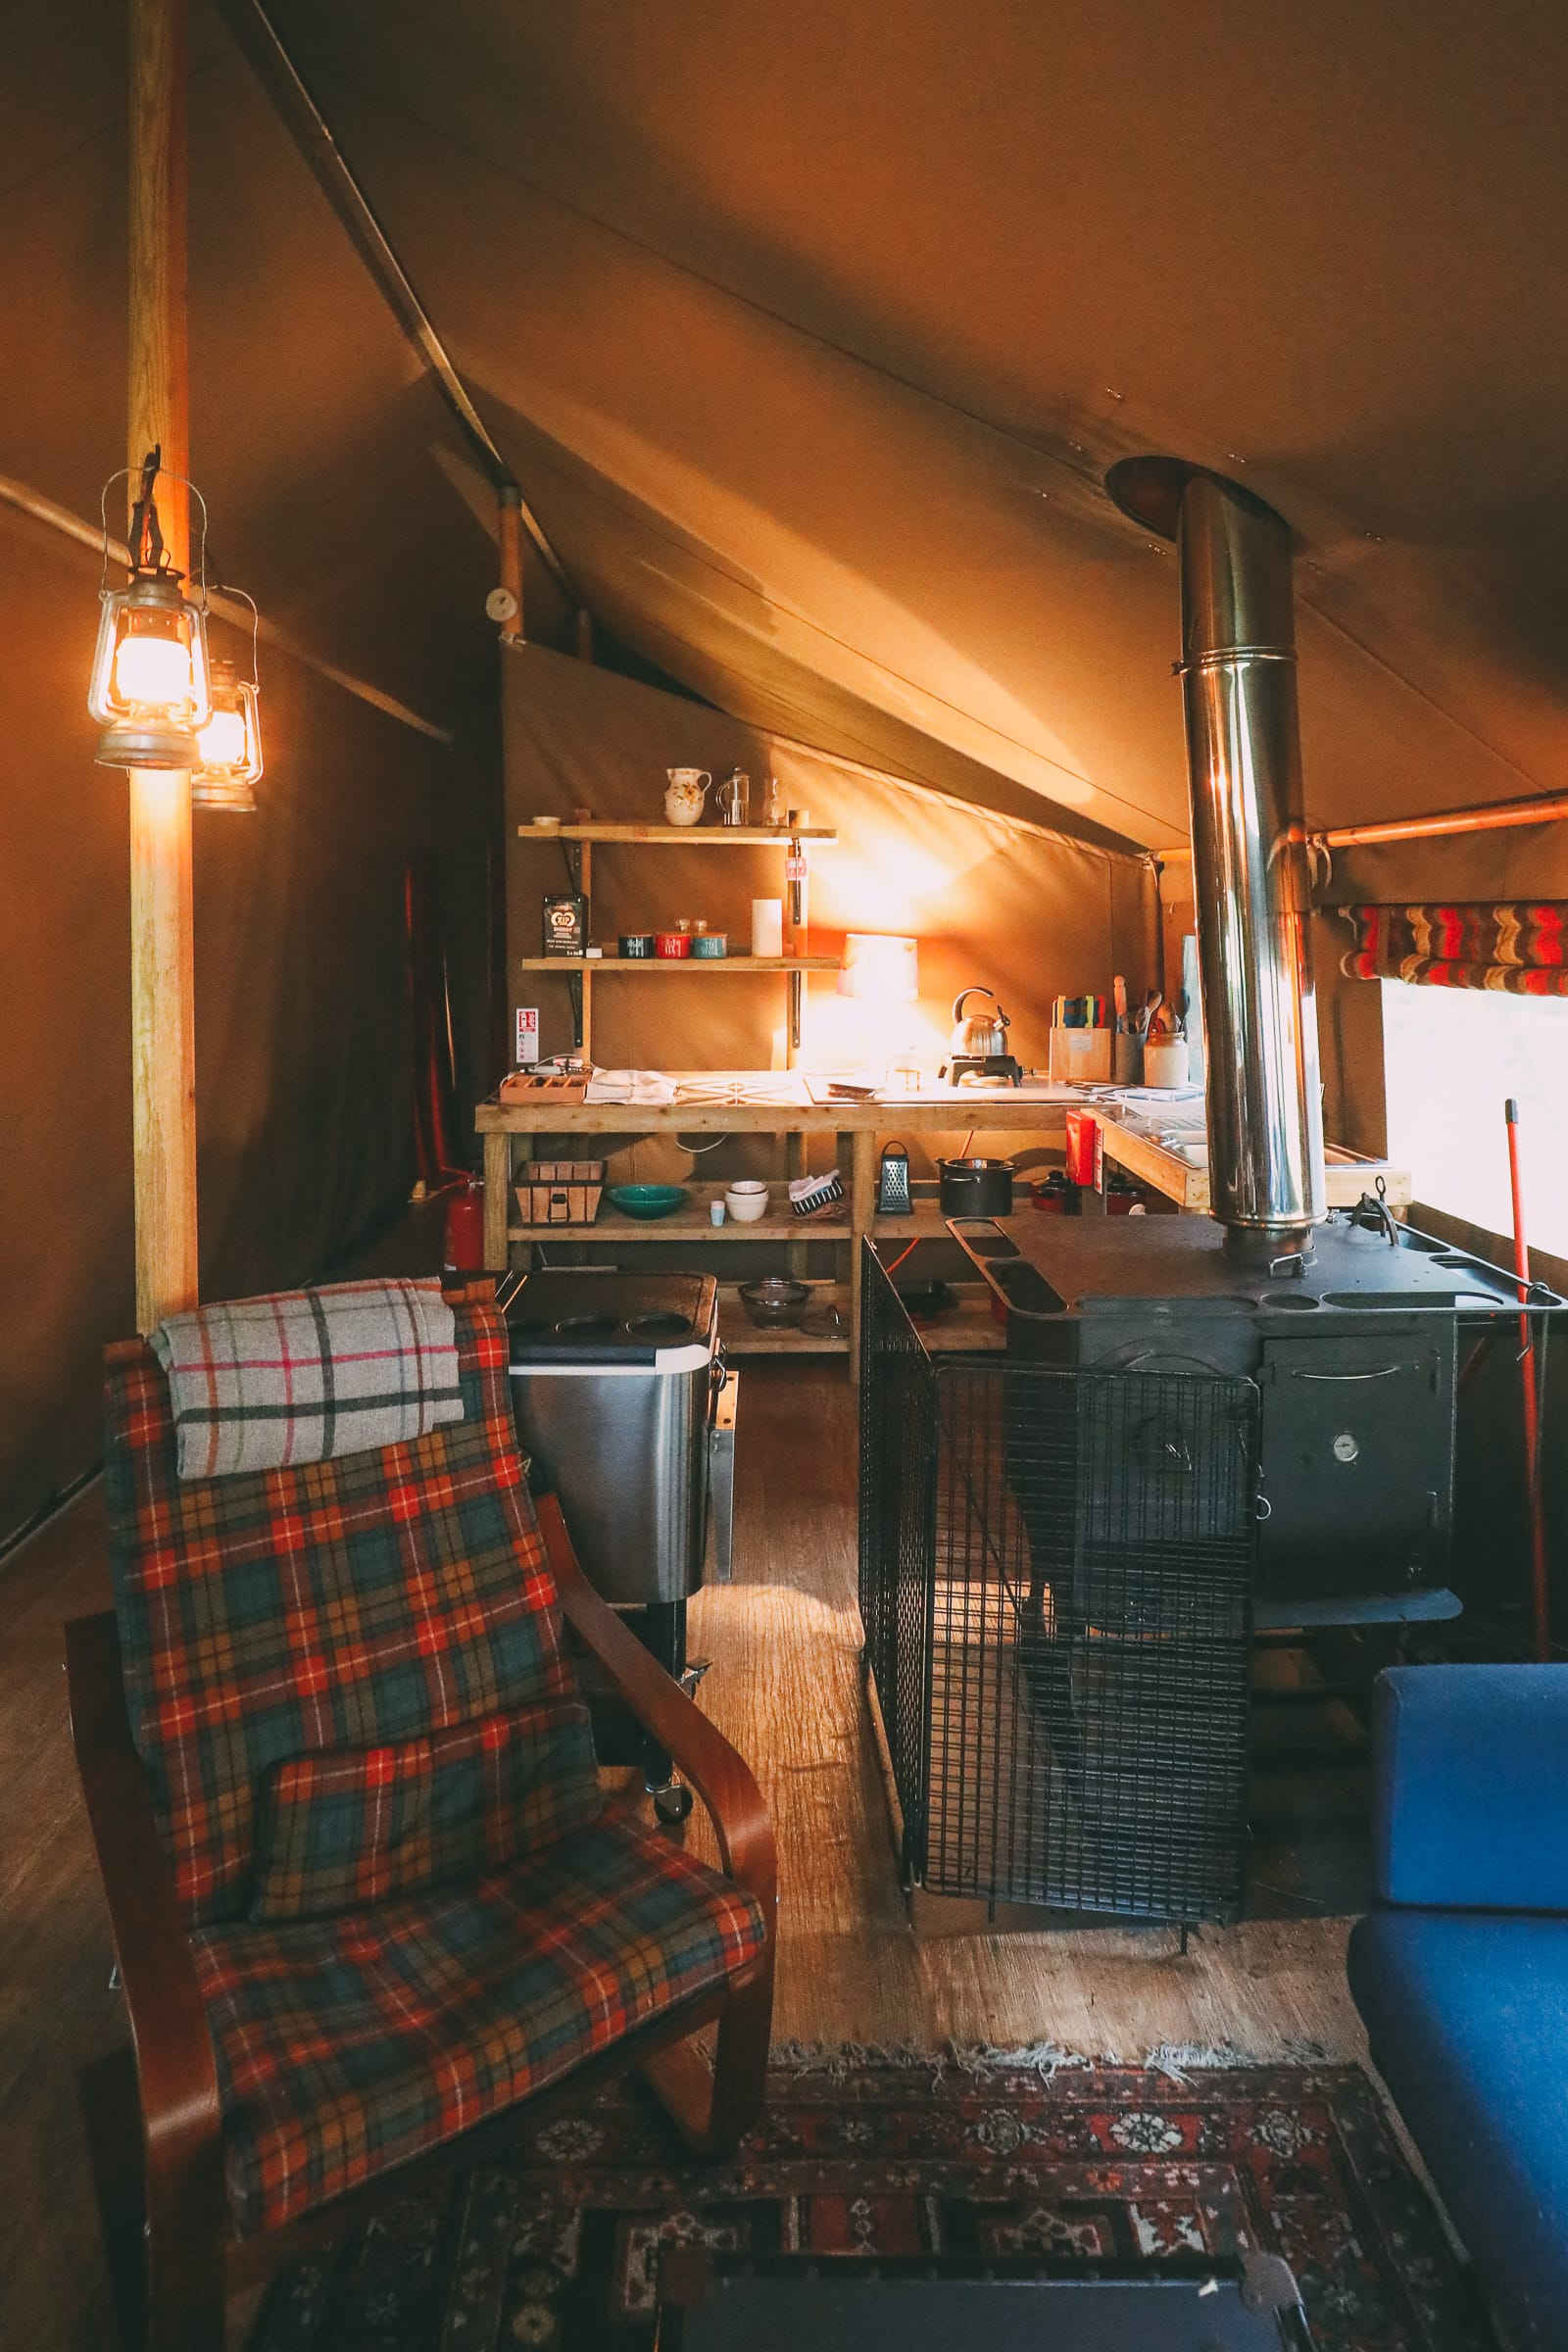 Finding Robin Hood's Bow And Safari Lodging In The Peak District, England (42)